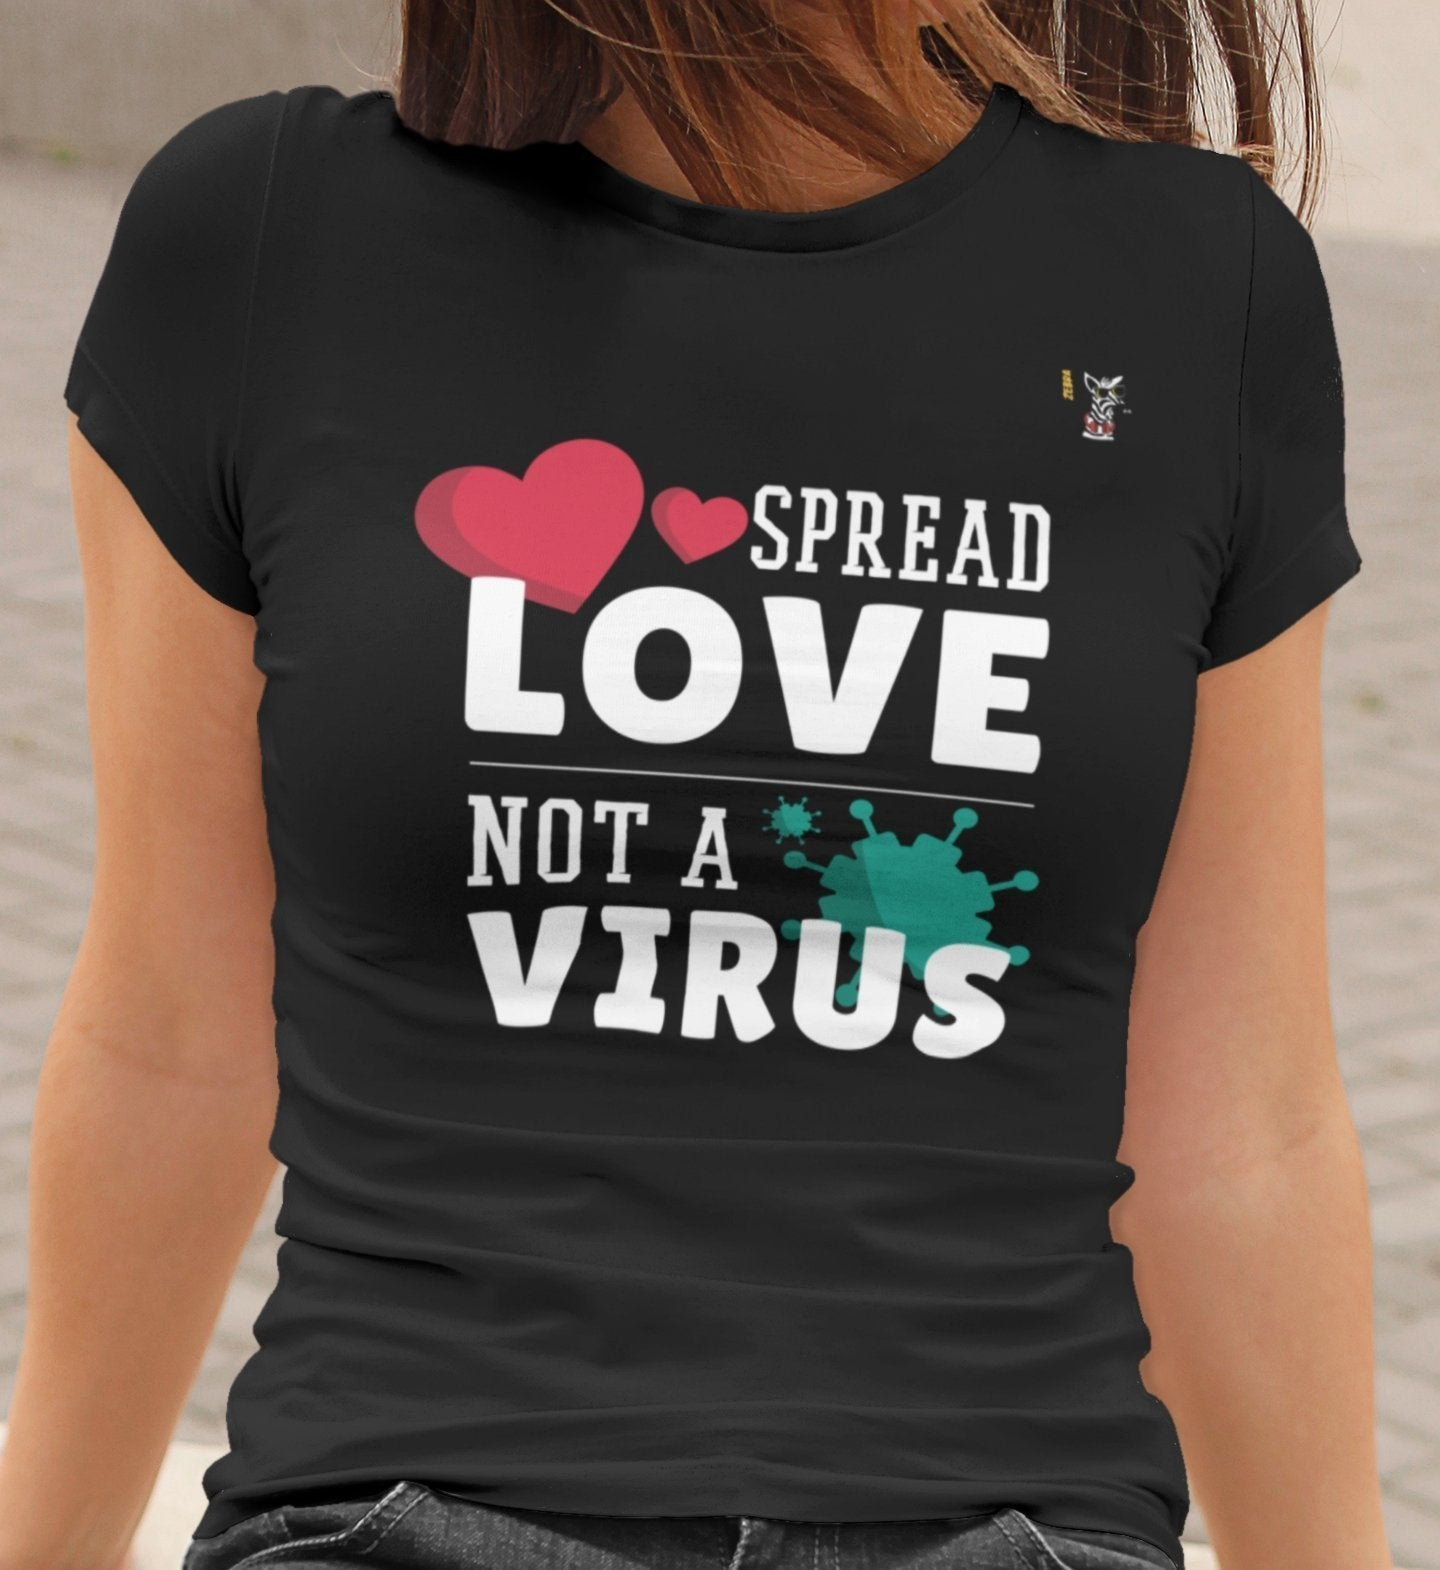 Spread Love Not A Virus Short-Sleeve T-shirt Trendy Zebra